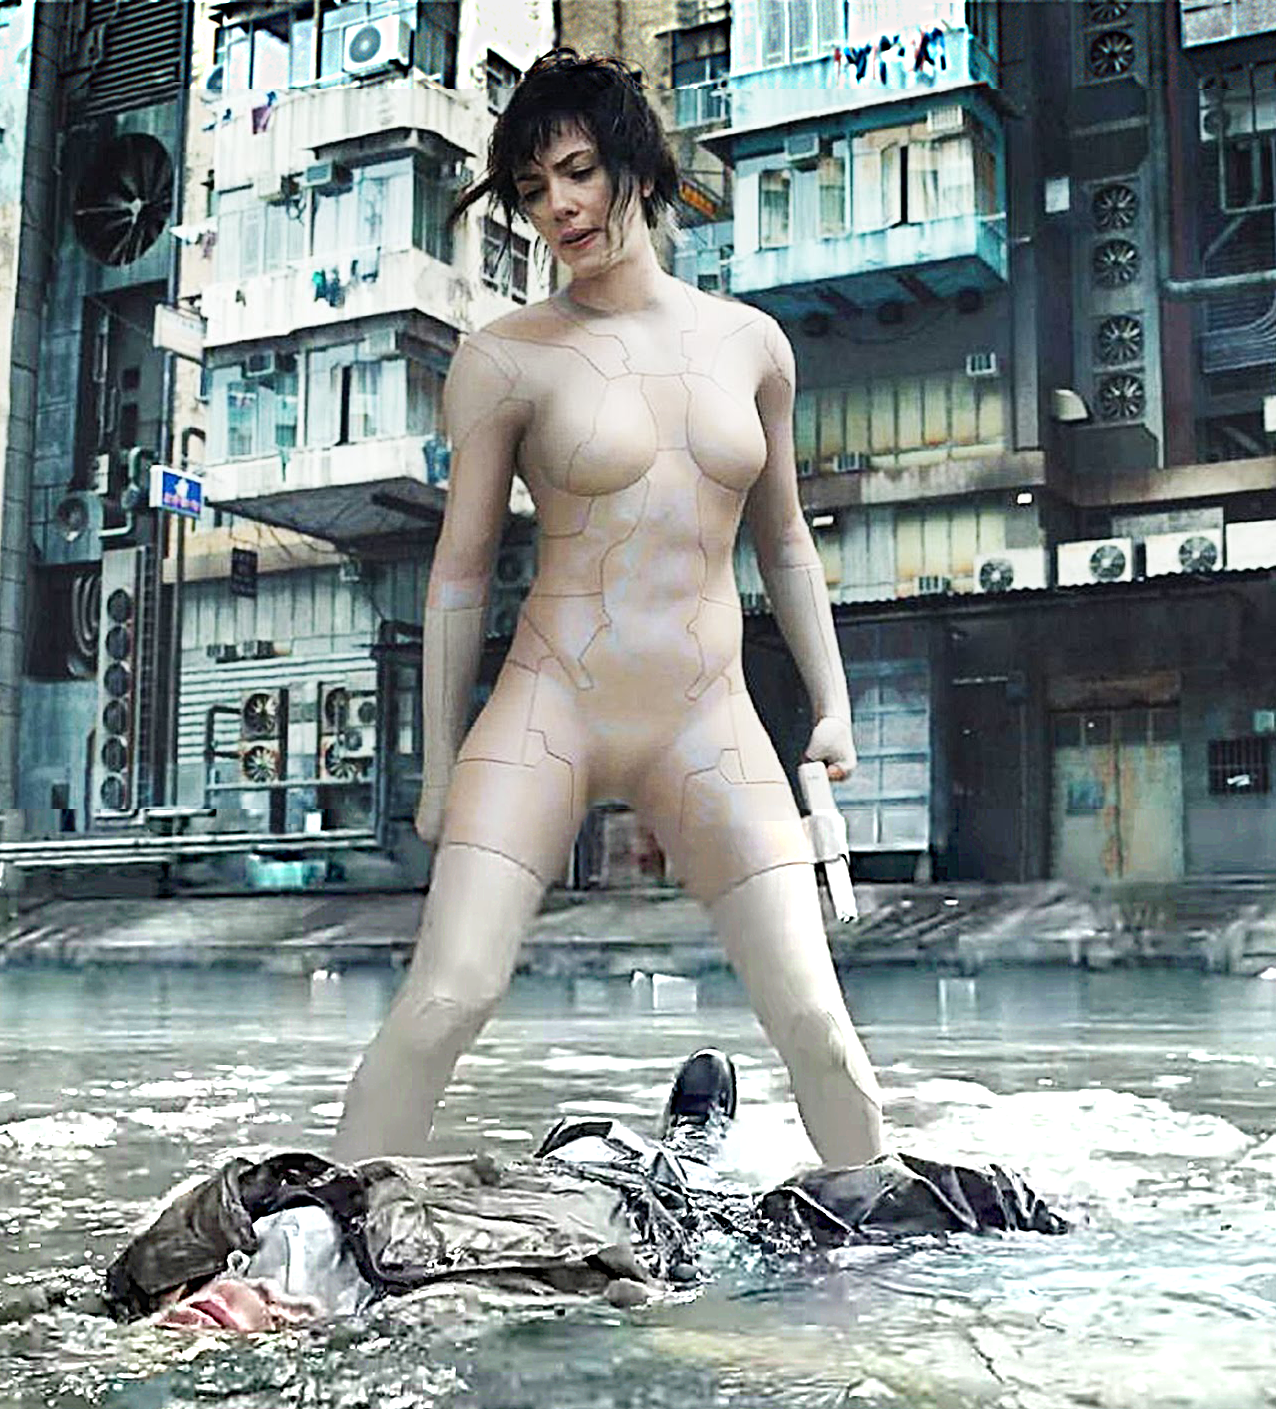 Scarlett Johansson debuts 'nude' as The Major/Motoko Kusanagi punching an unidentified man.